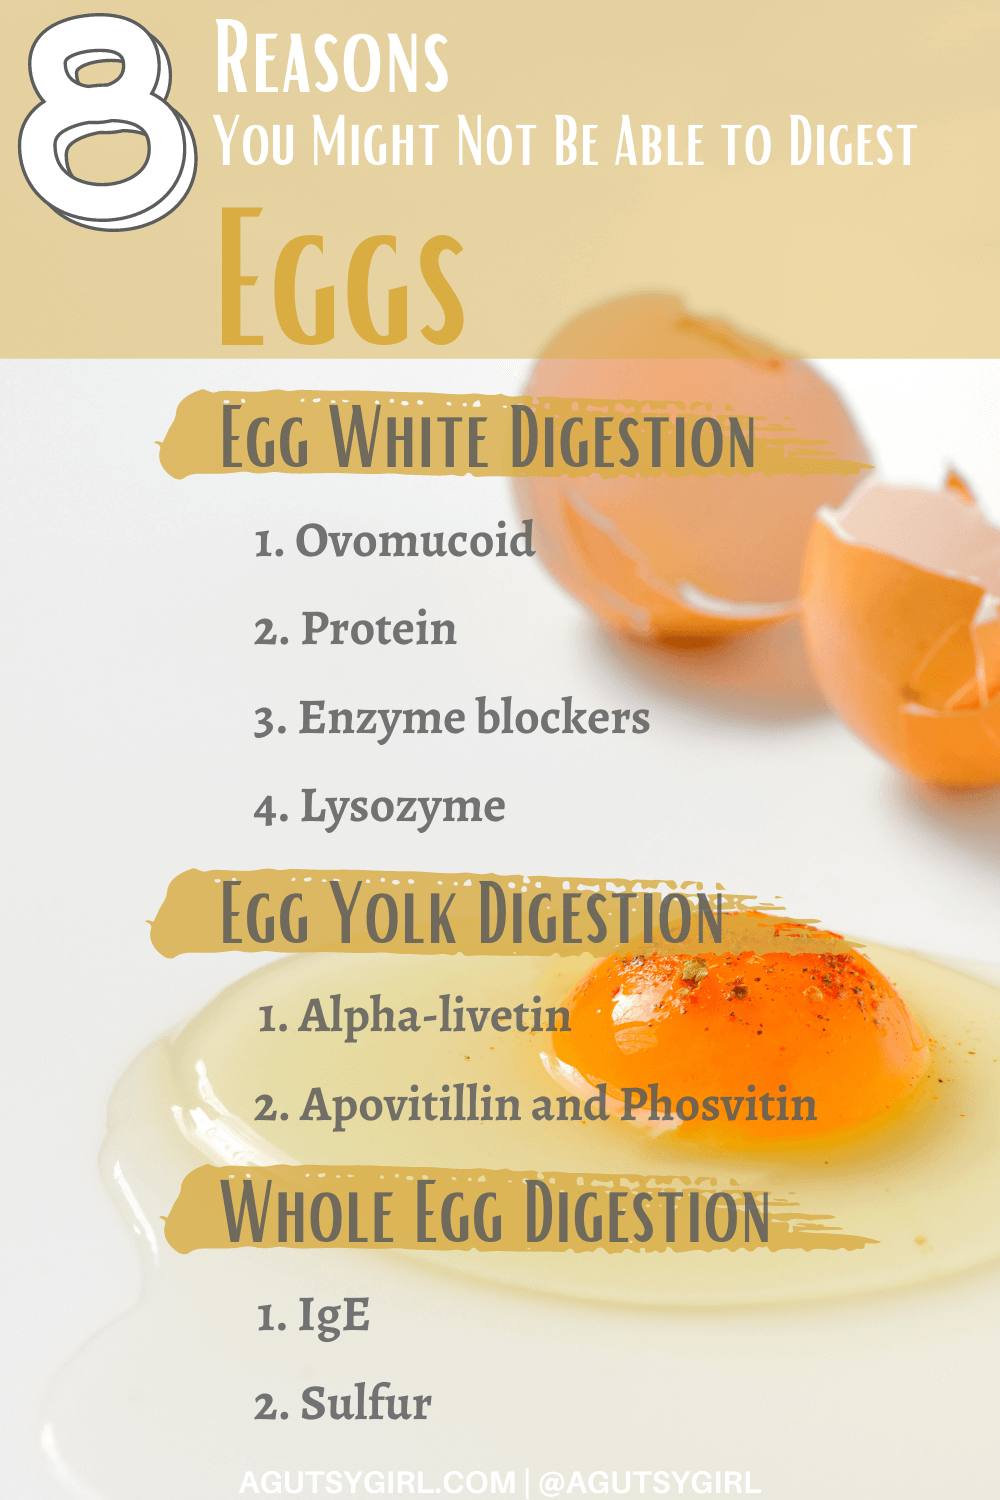 8 Reasons Why You Might Not be Able to Digest Eggs agutsygirl.com #eggallergy #eggs #eggintolerance